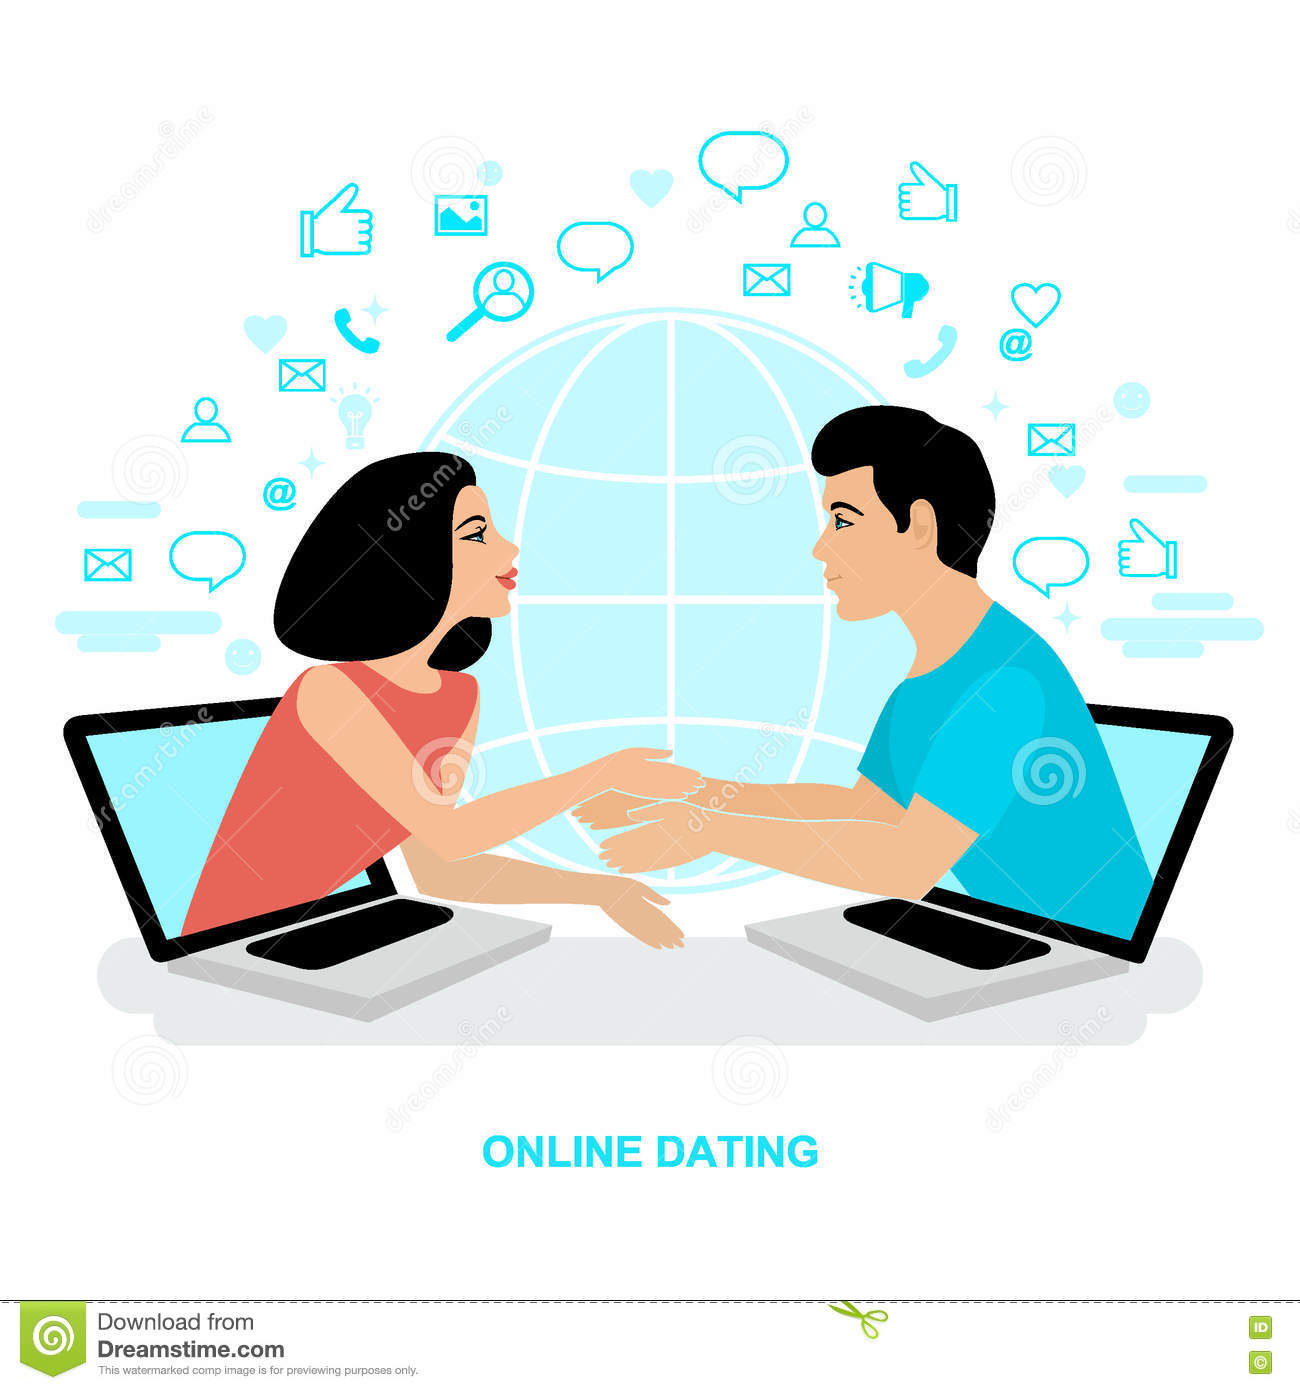 free online dating & chat in canisteo Free online dating network email, phone and meet thousands of fun, attractive, hot singles in your area based on chemistry match on our totally free online dating site.